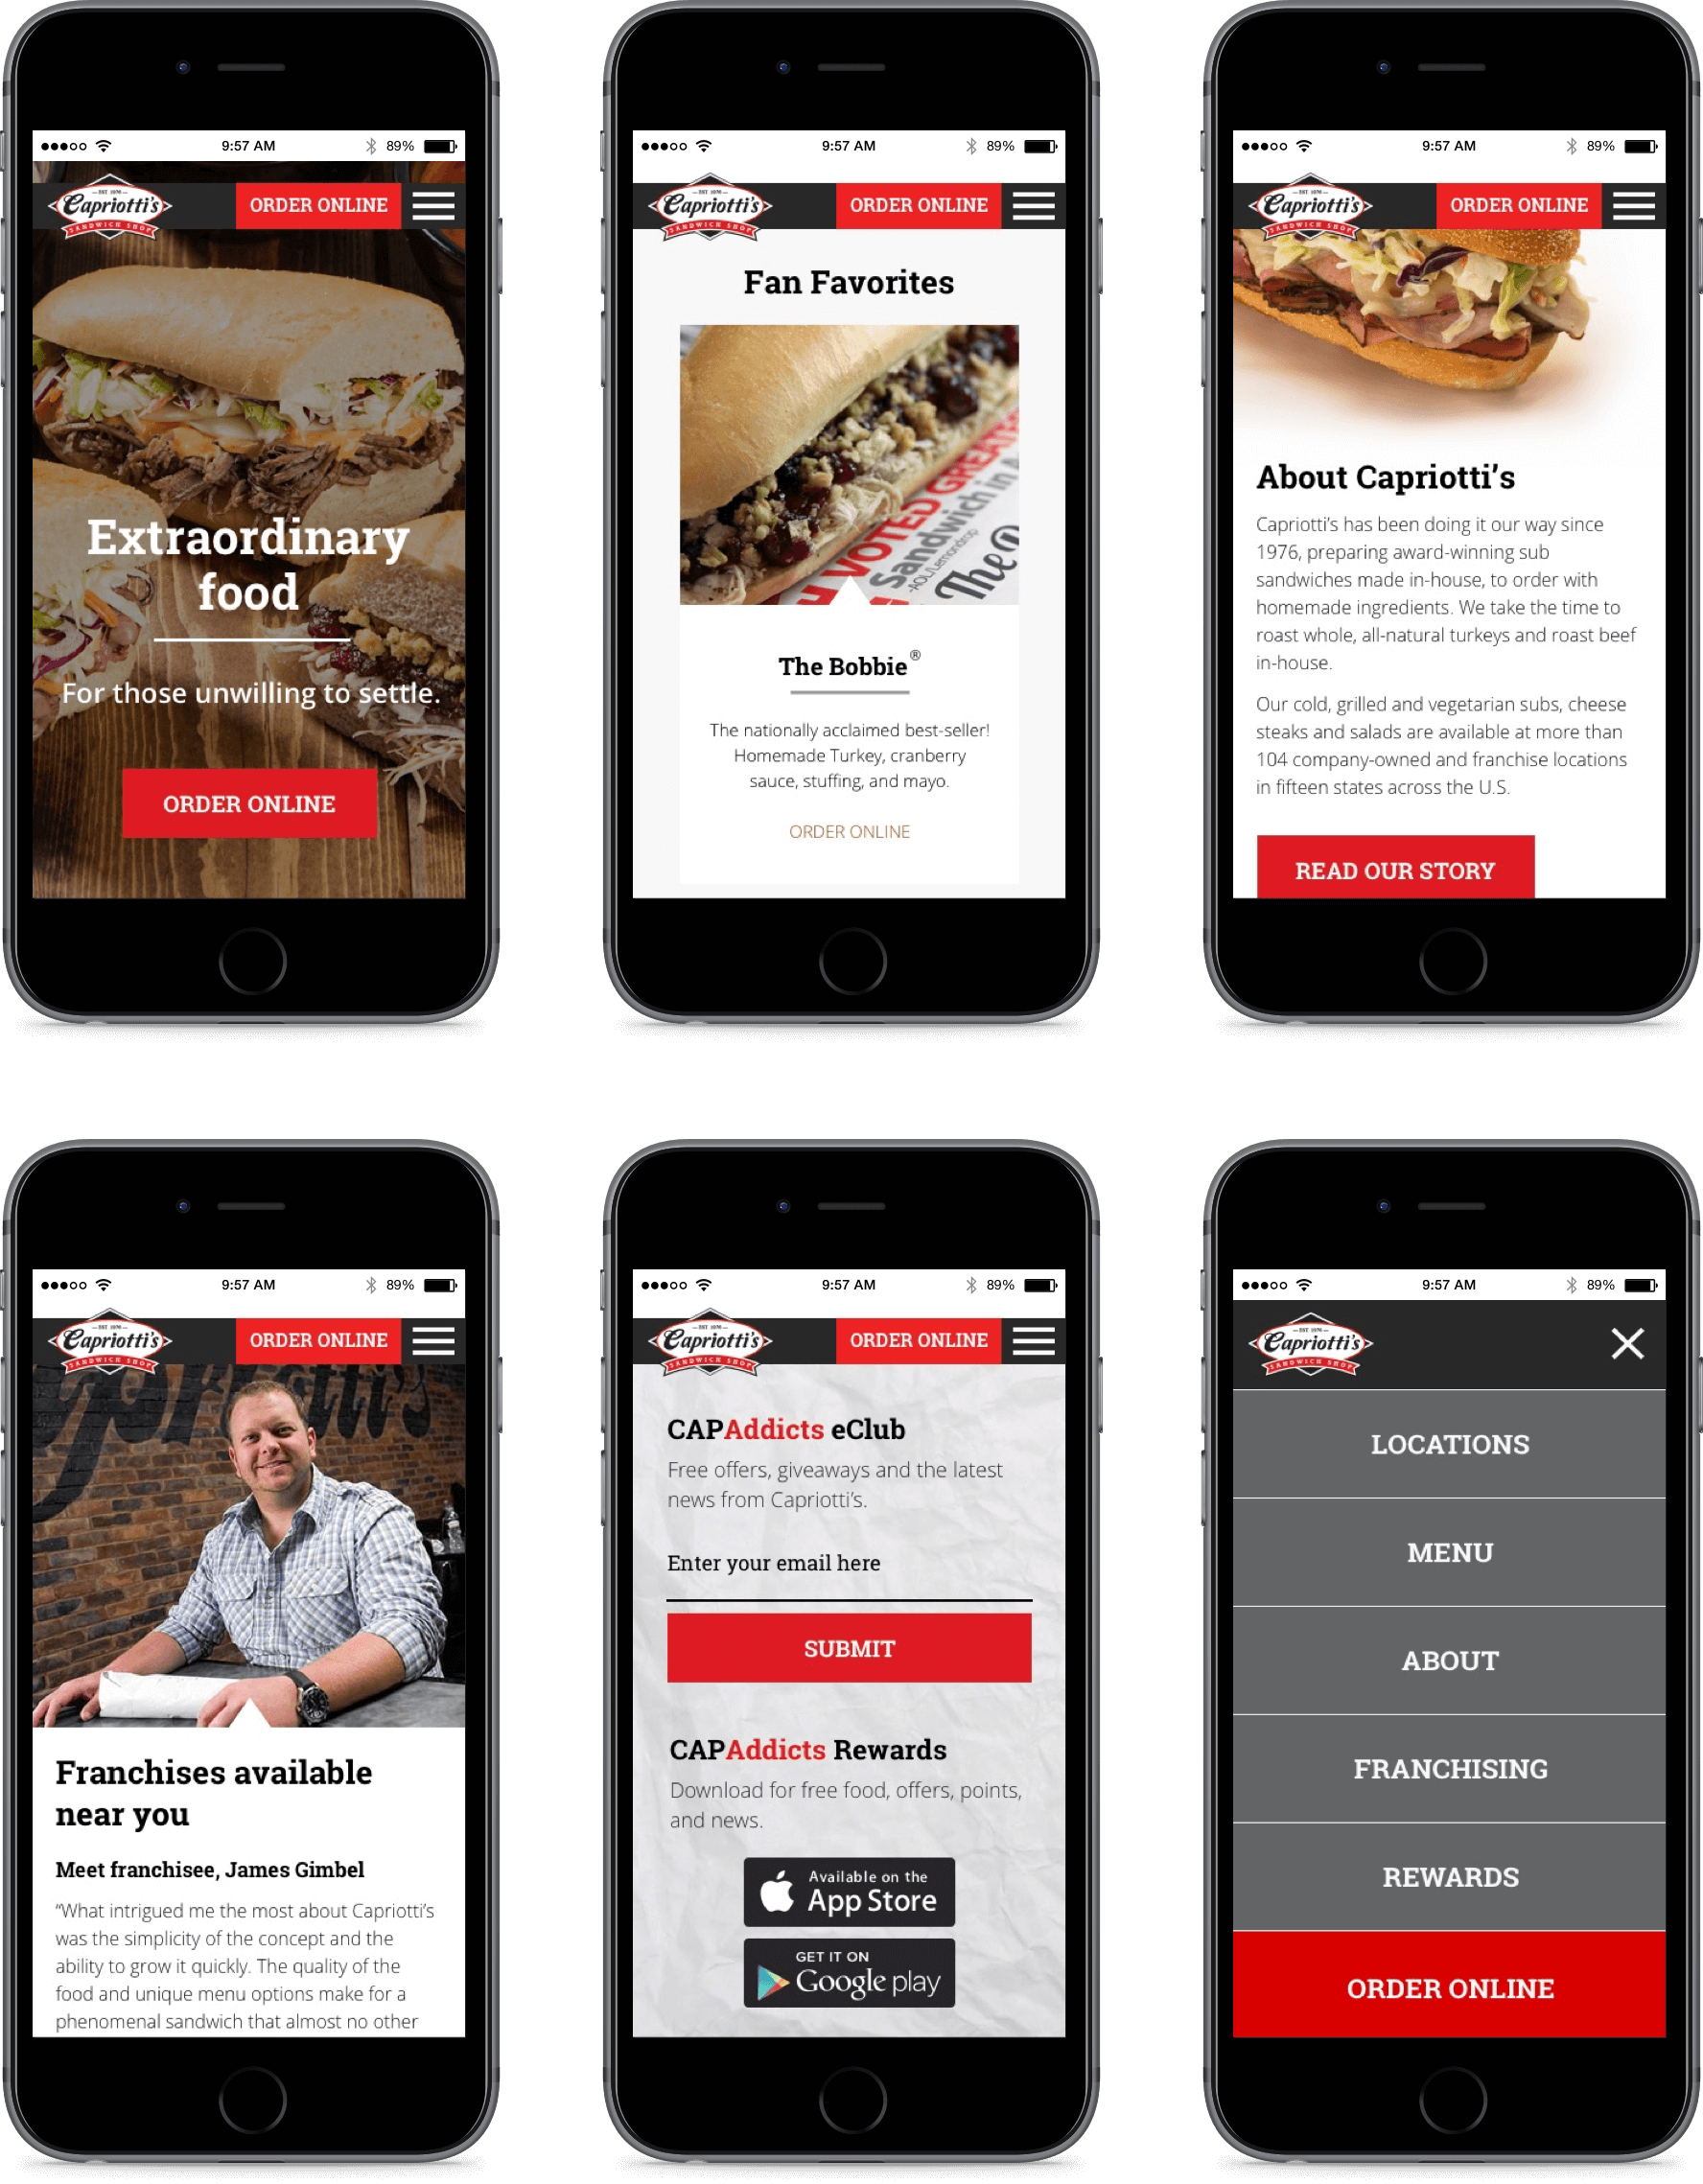 Mobile mockups of the homepage using an iPhone 6s.